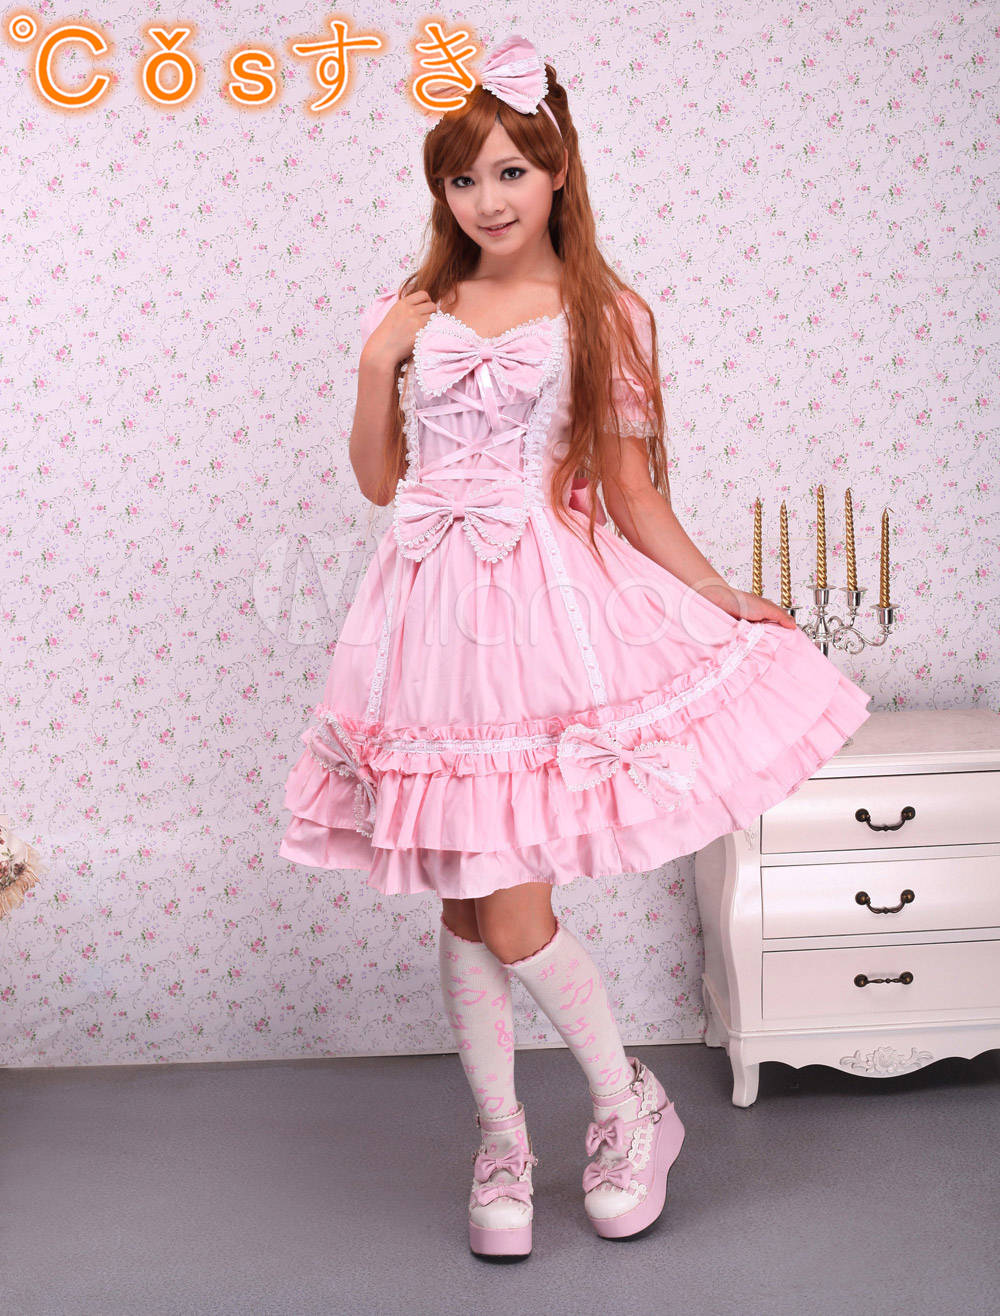 Free shipping! Newest! High - quality! Cotton Pink Cape Sweet Lolita DressОдежда и ак�е��уары<br><br><br>Aliexpress